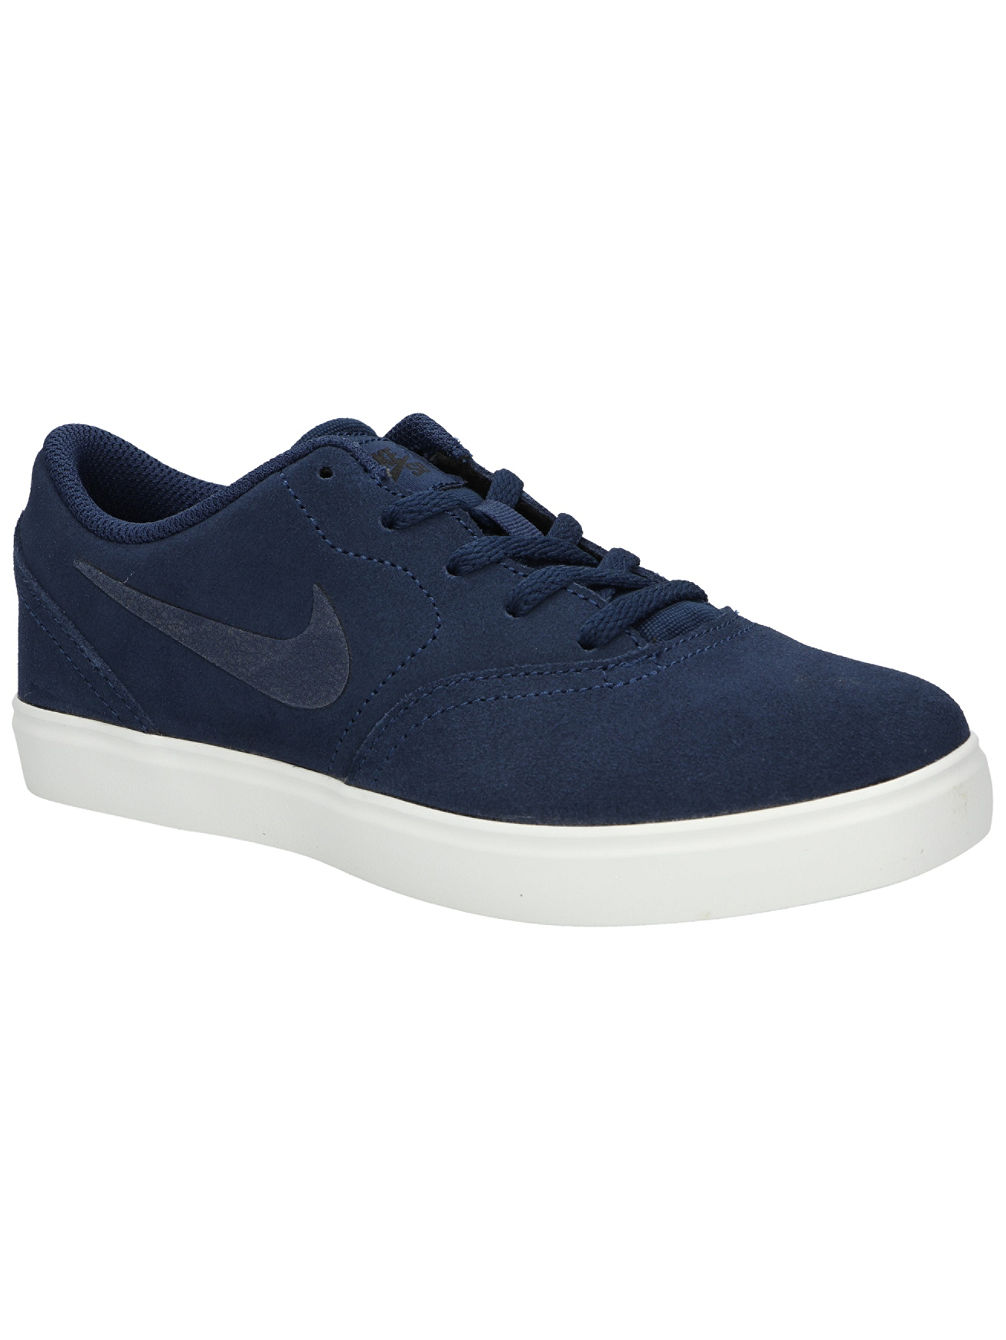 newest collection 8a1eb 6cf2d Compra Nike Nike SB Check Suede PS SKate Shoes online su Blue Tomato